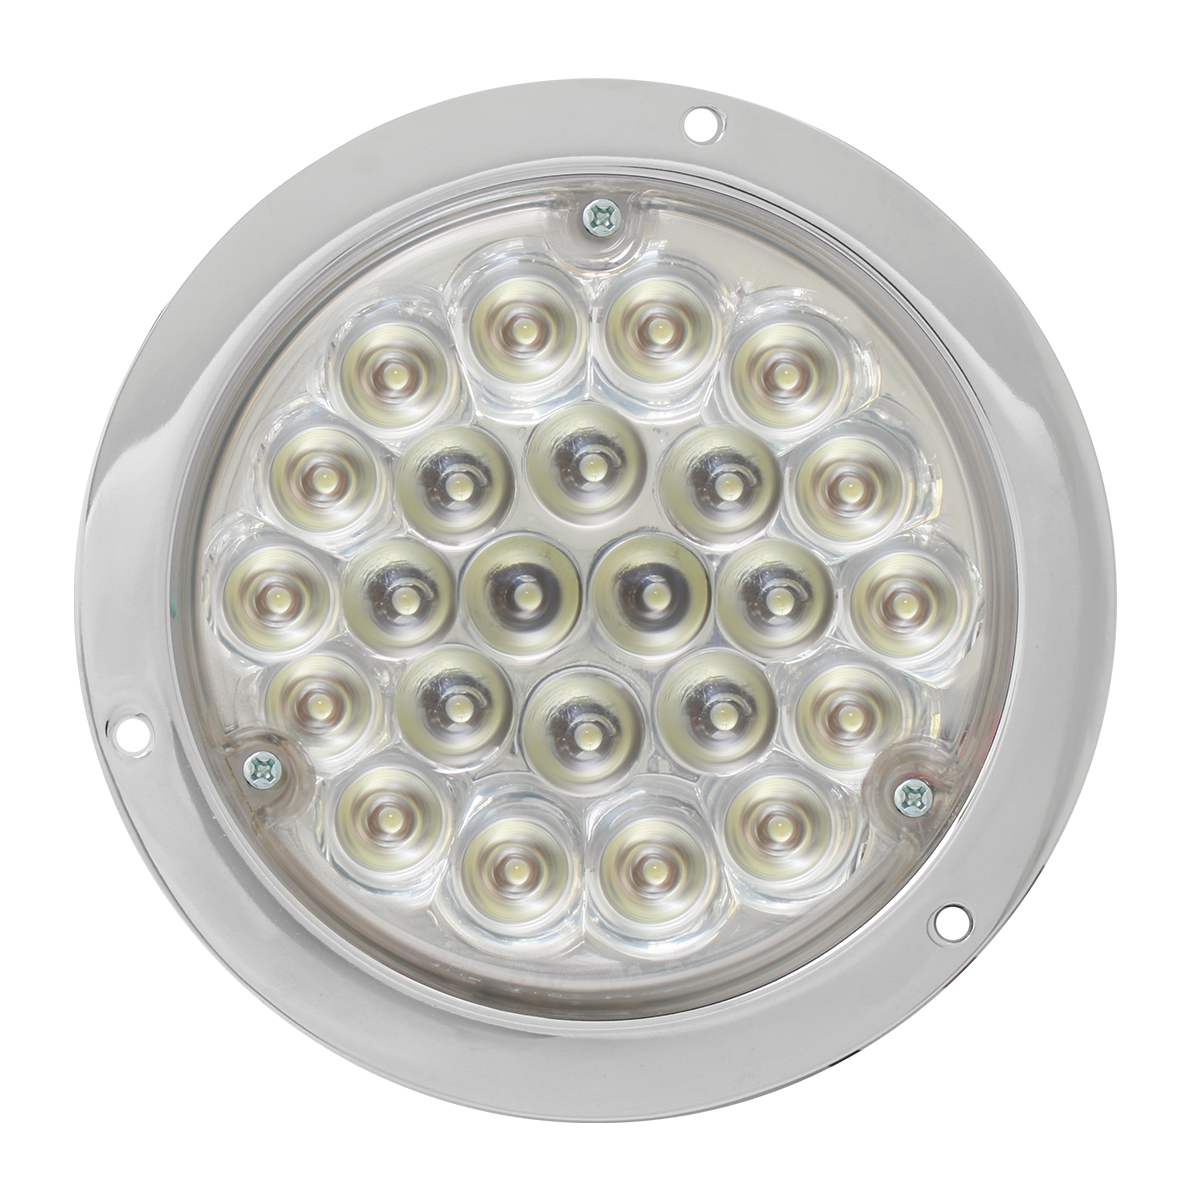 "87584 4"" Pearl LED Light in White/Clear w/ Chrome Housing"